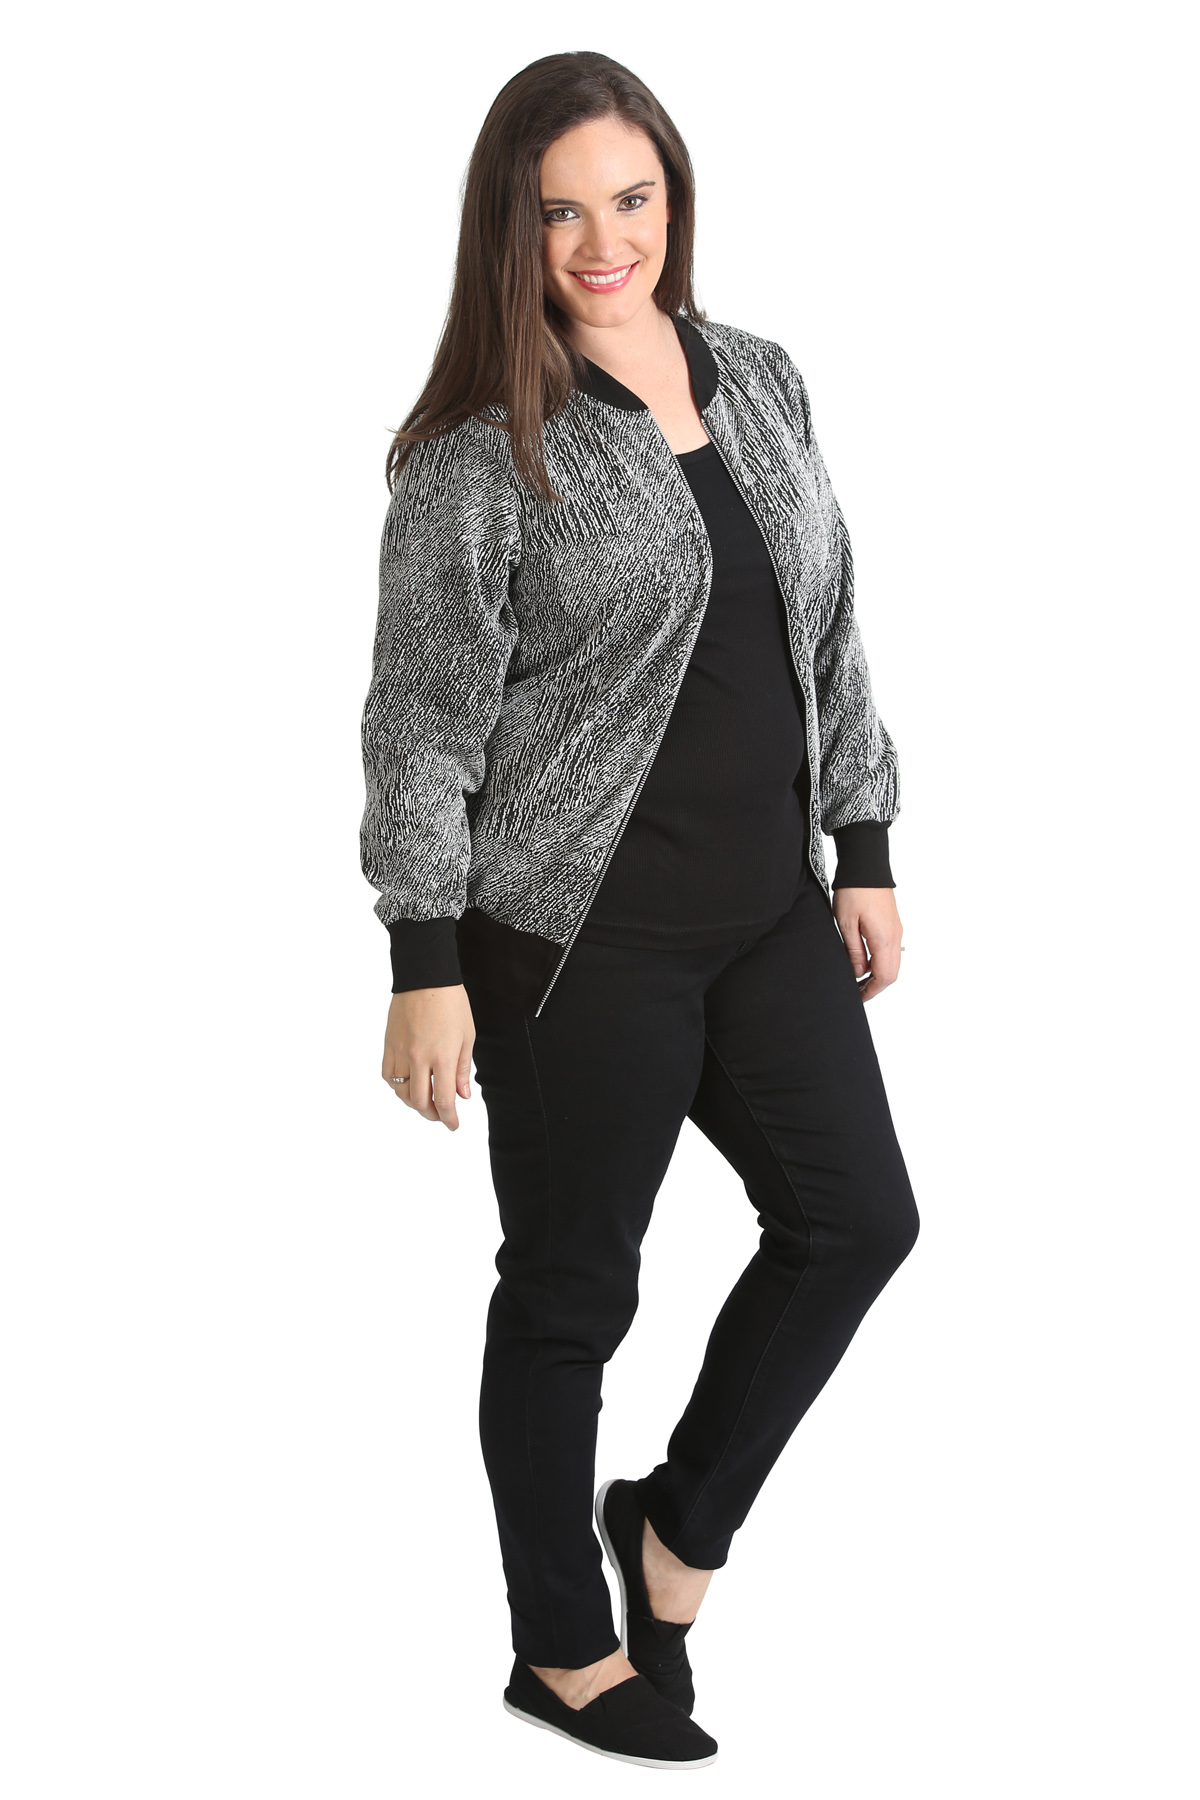 Find Moto-Jackets and coats plus a range of jackets from dressy to casual in womens plus sizes. We use cookies to improve your shopping experience. If you continue, we assume you consent to receive all cookies on our site.